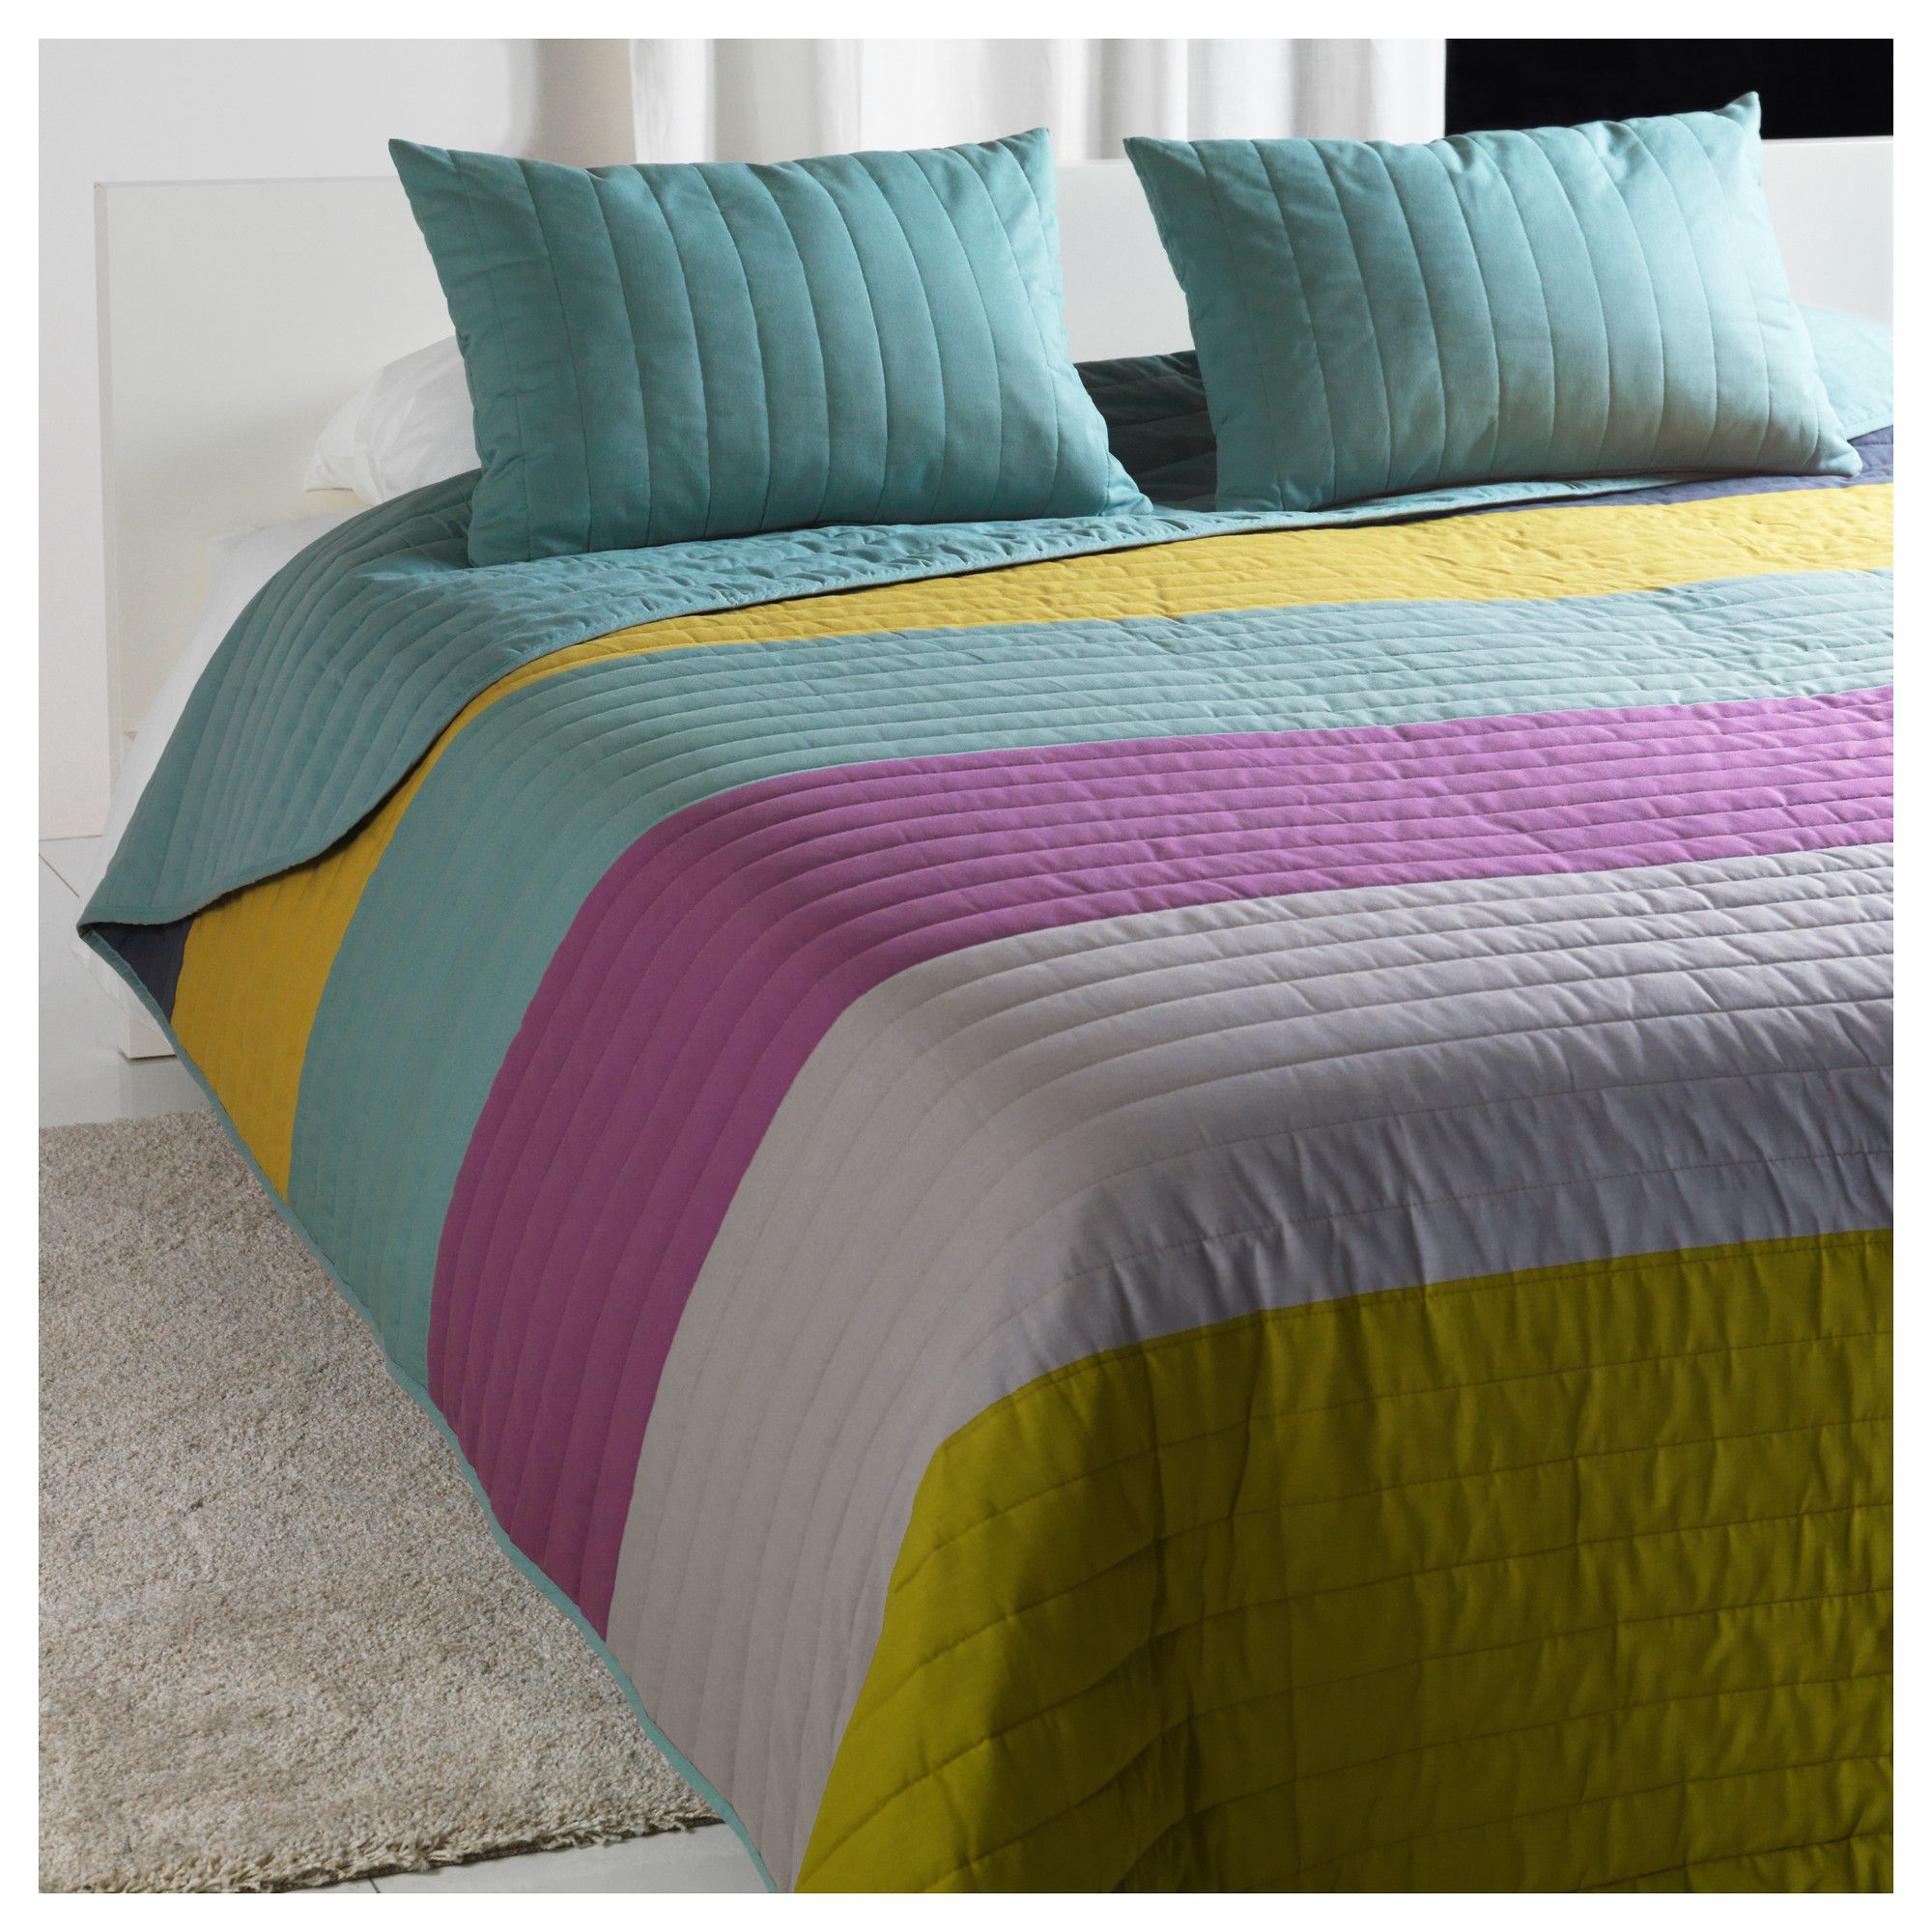 Malin bedspread and cushion covers queenking ikea